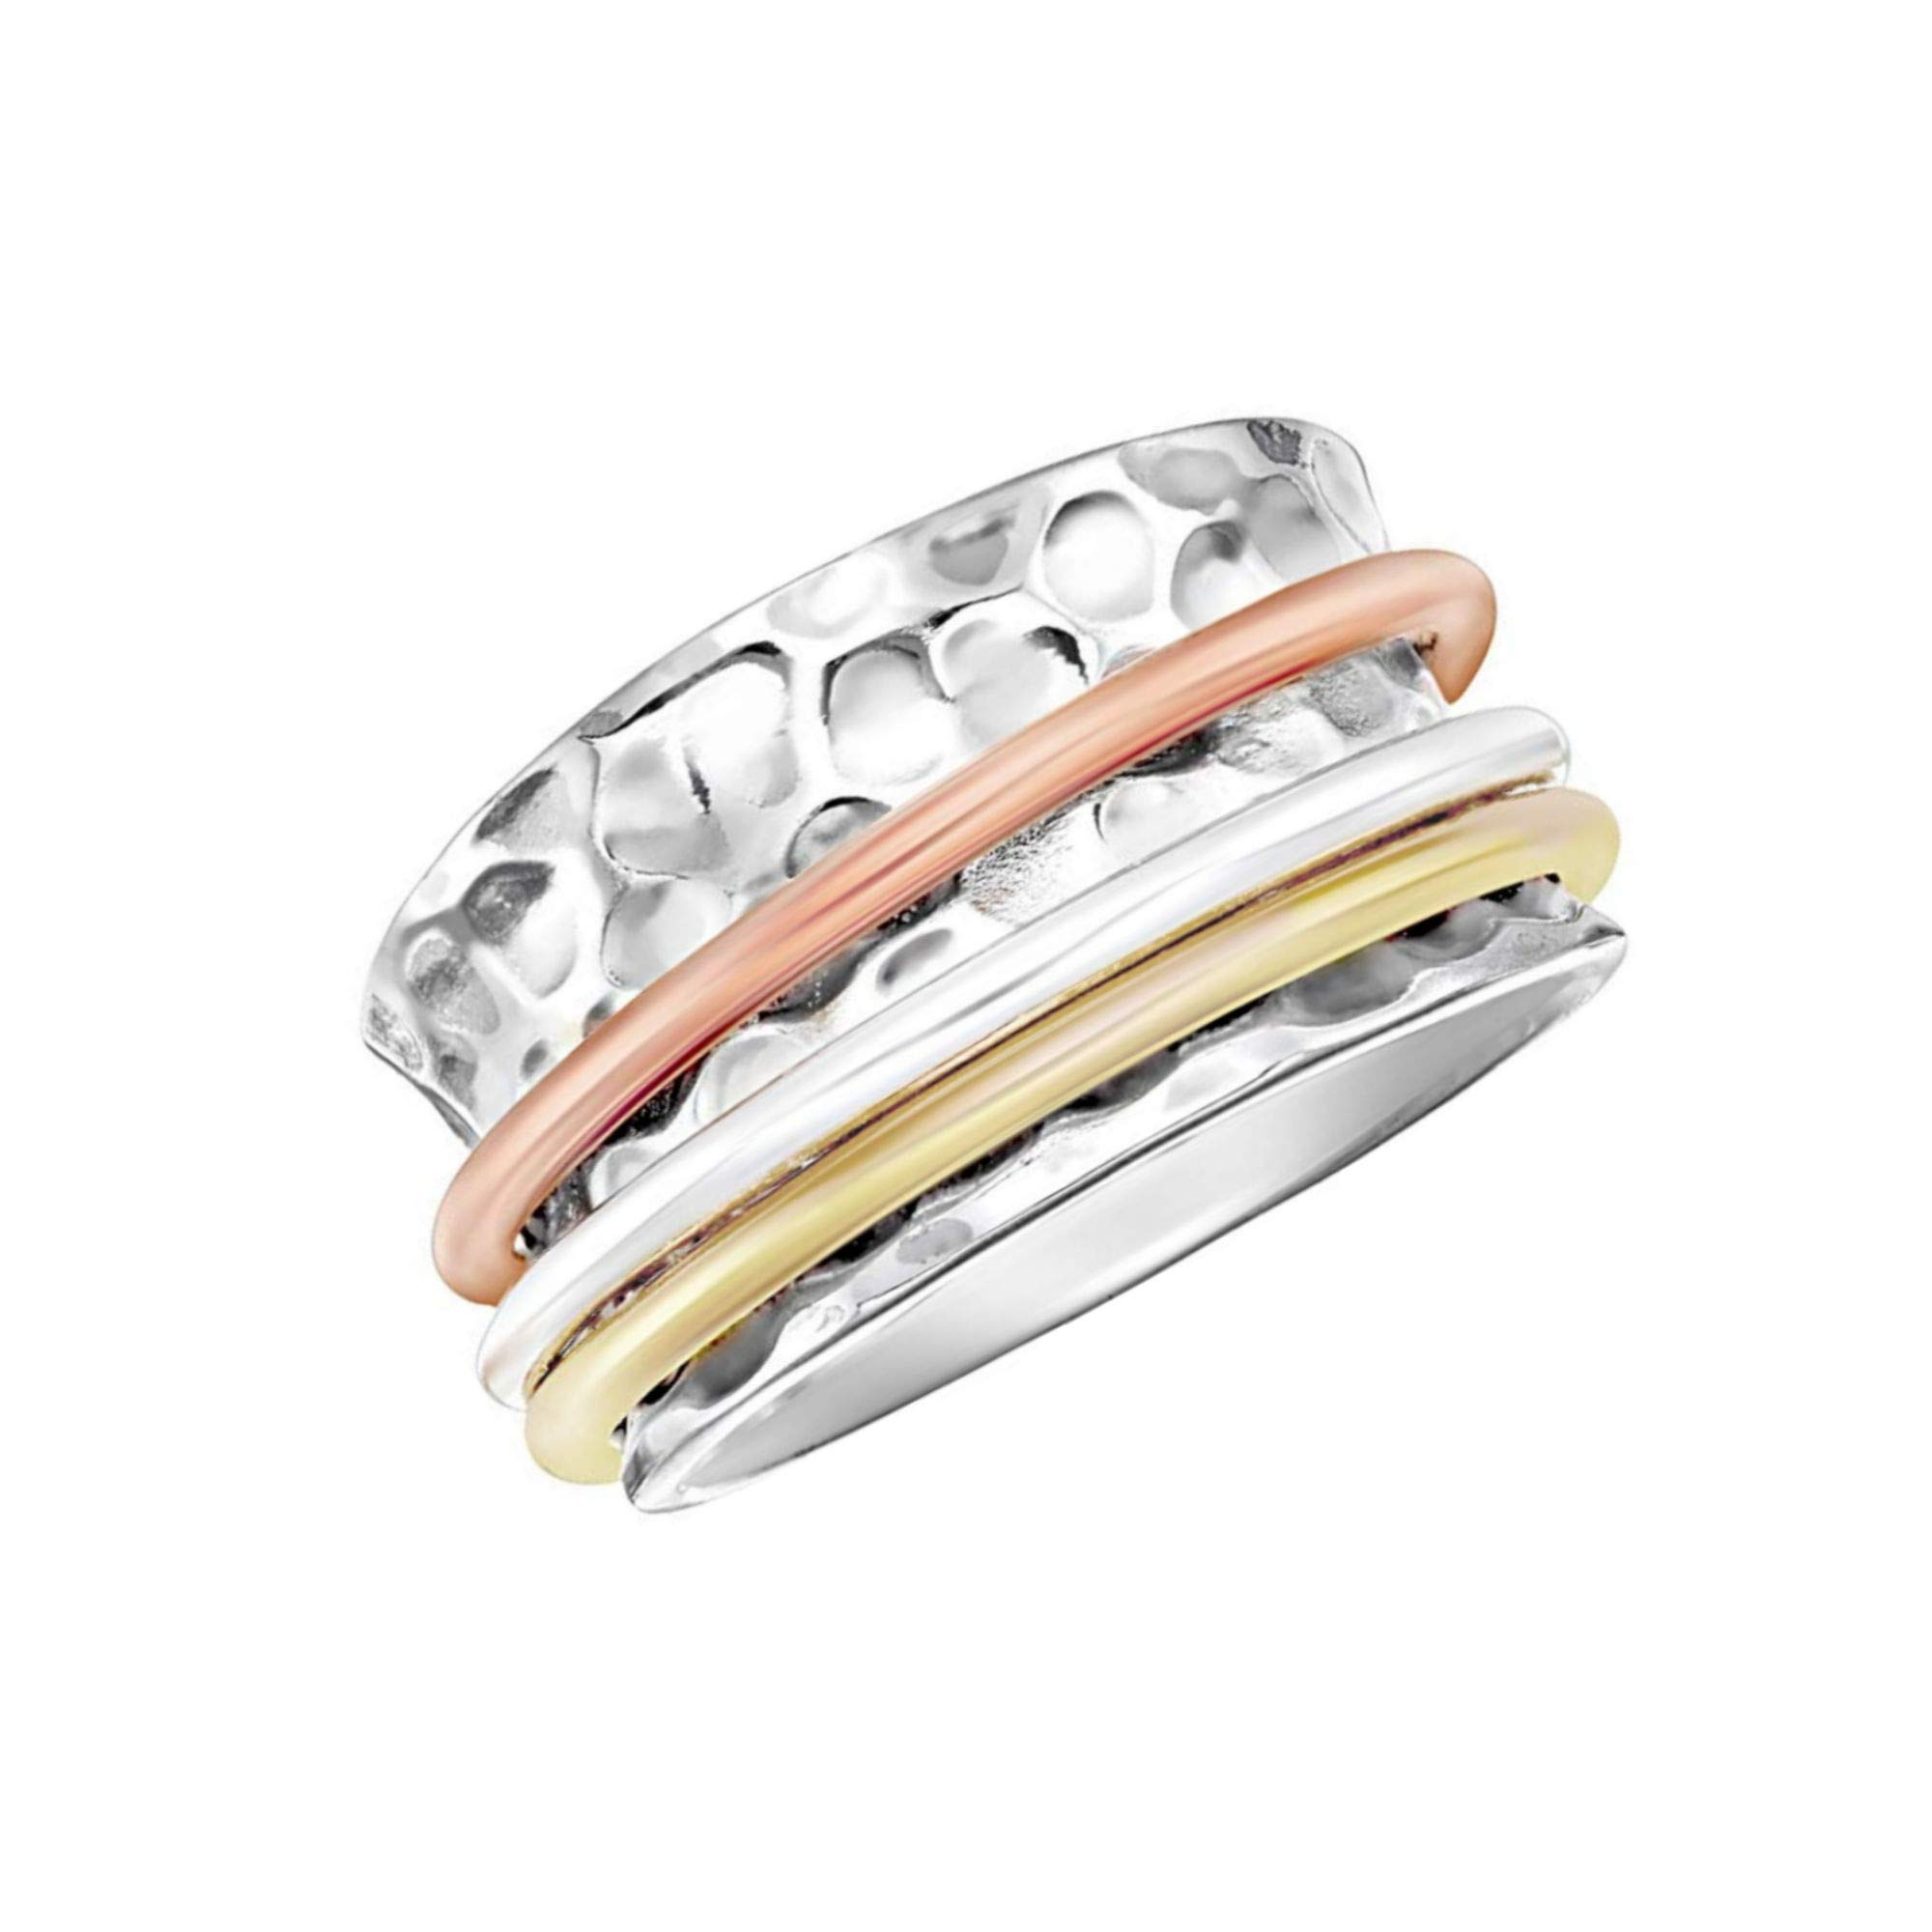 Energy Stone 925 Sterling Silver Serenity Comfort-fit Tapered Meditation Spinner Ring for Women with Tri-Color Spinners (Style US12)